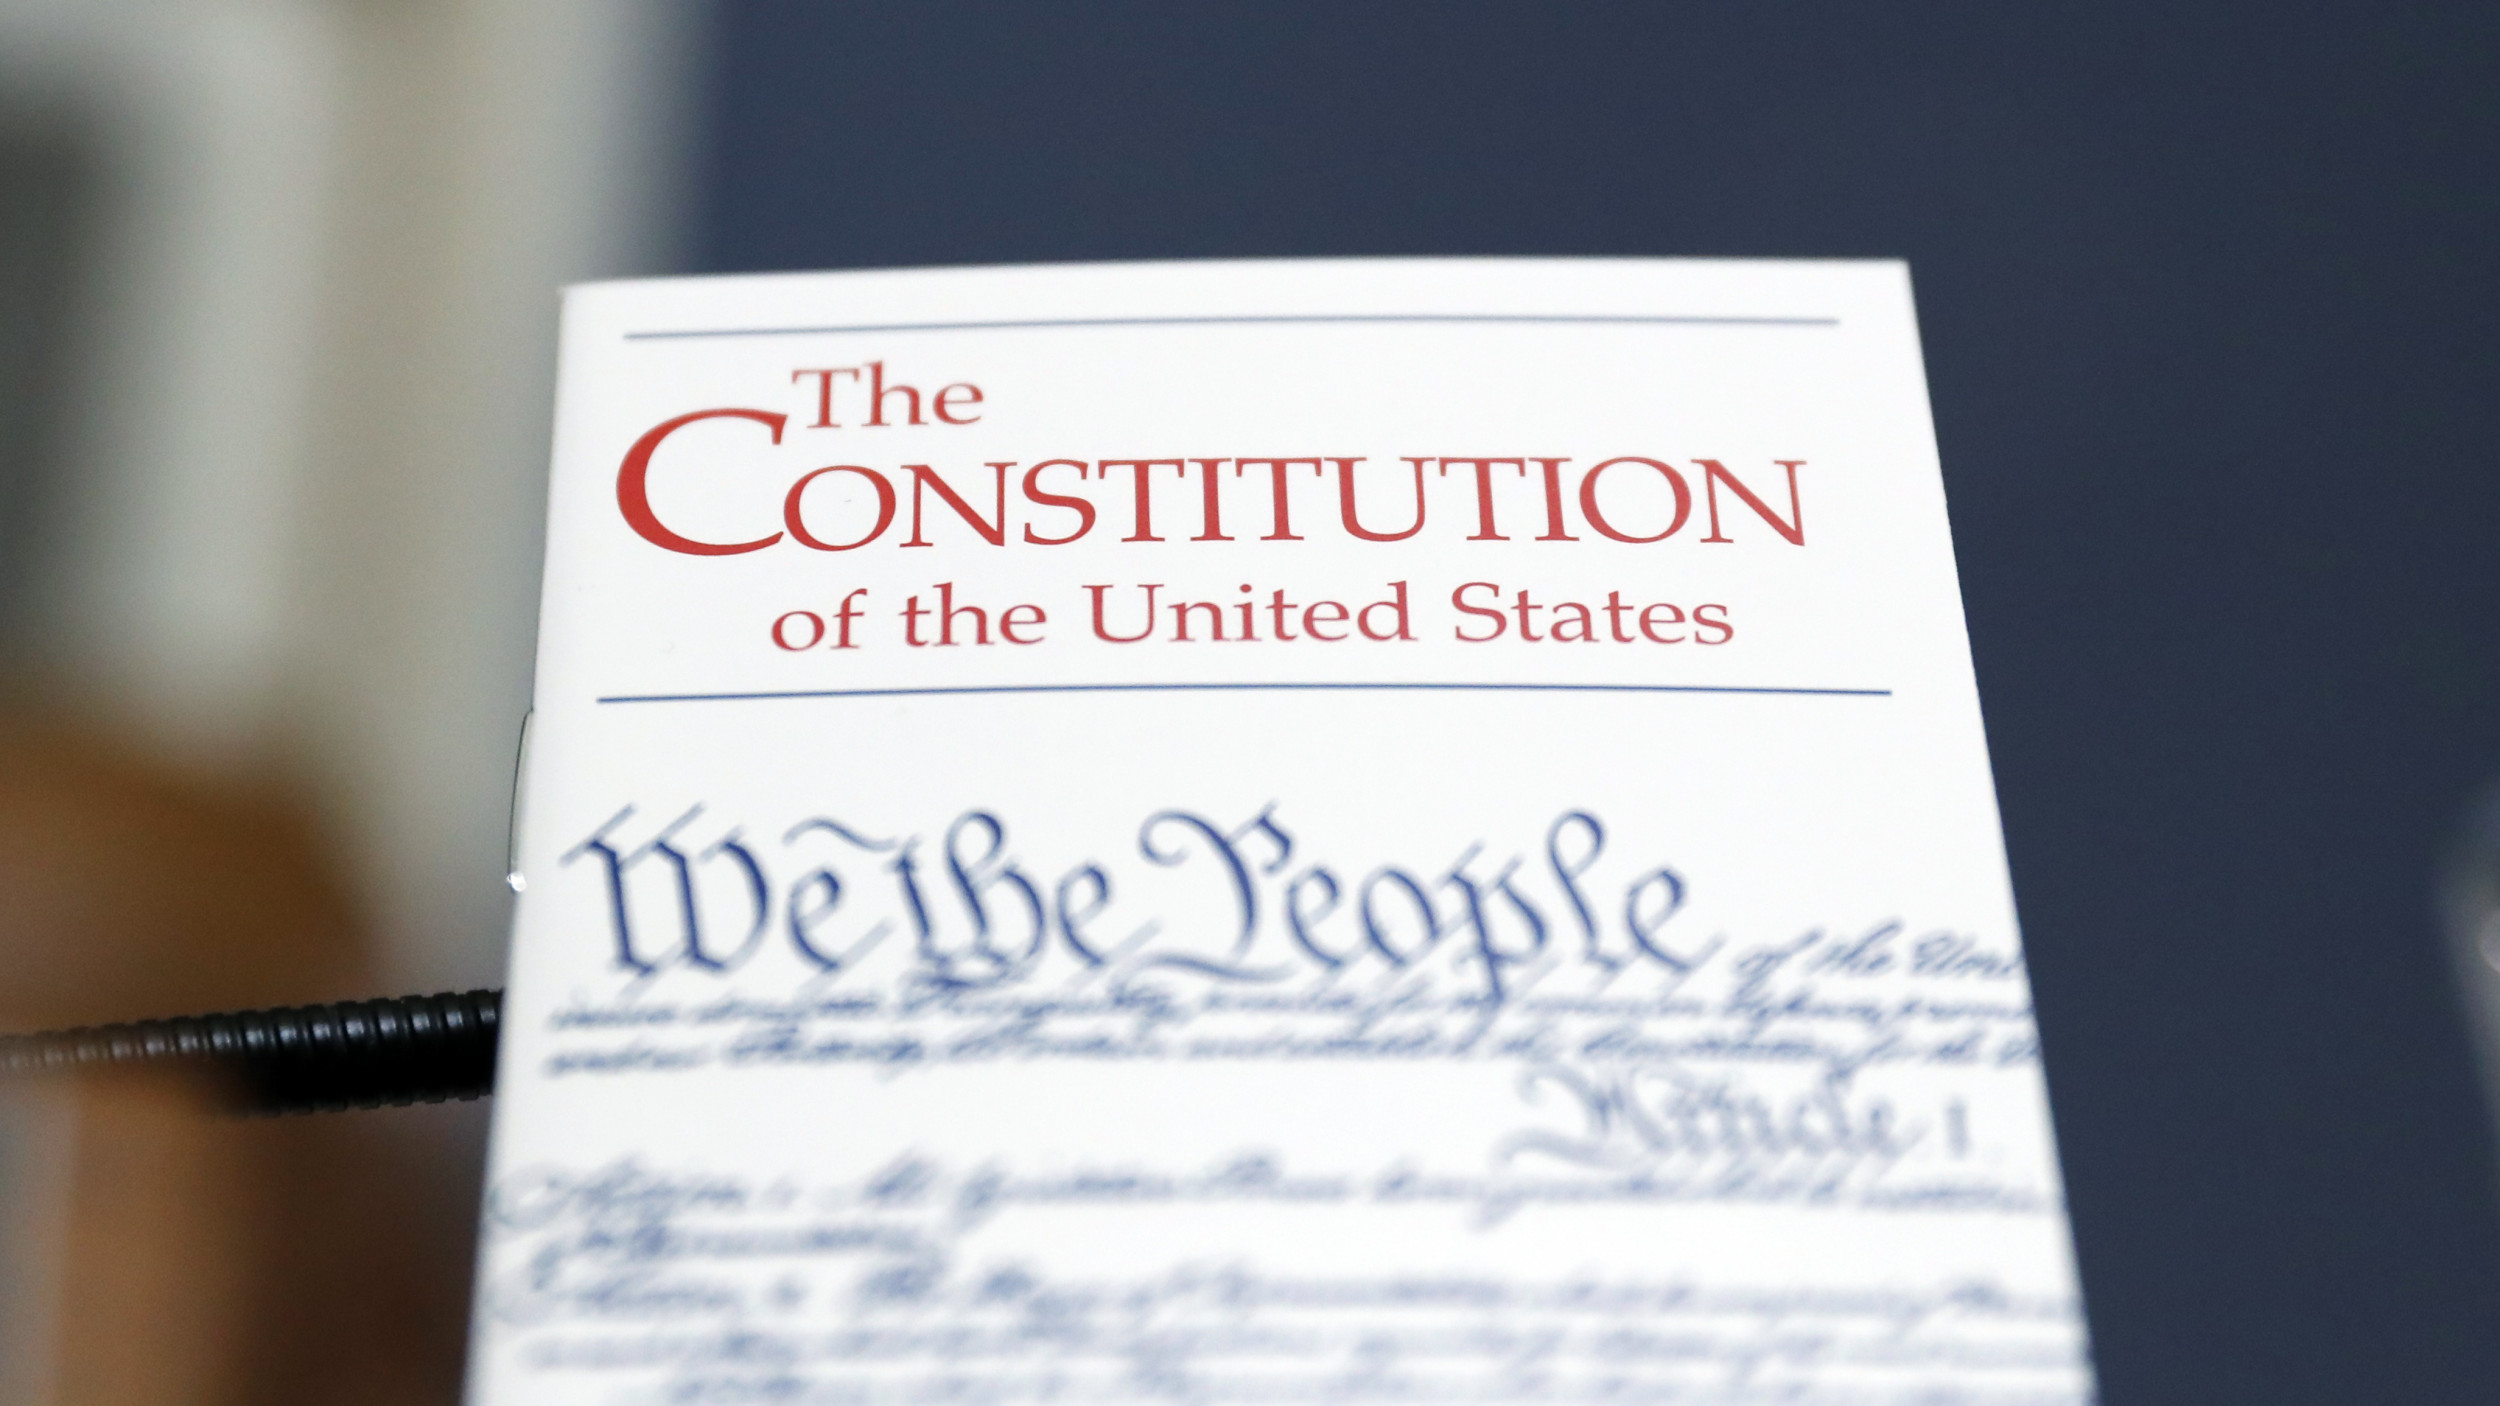 Does the oath of office bind constitutional interpretation? | Opinion